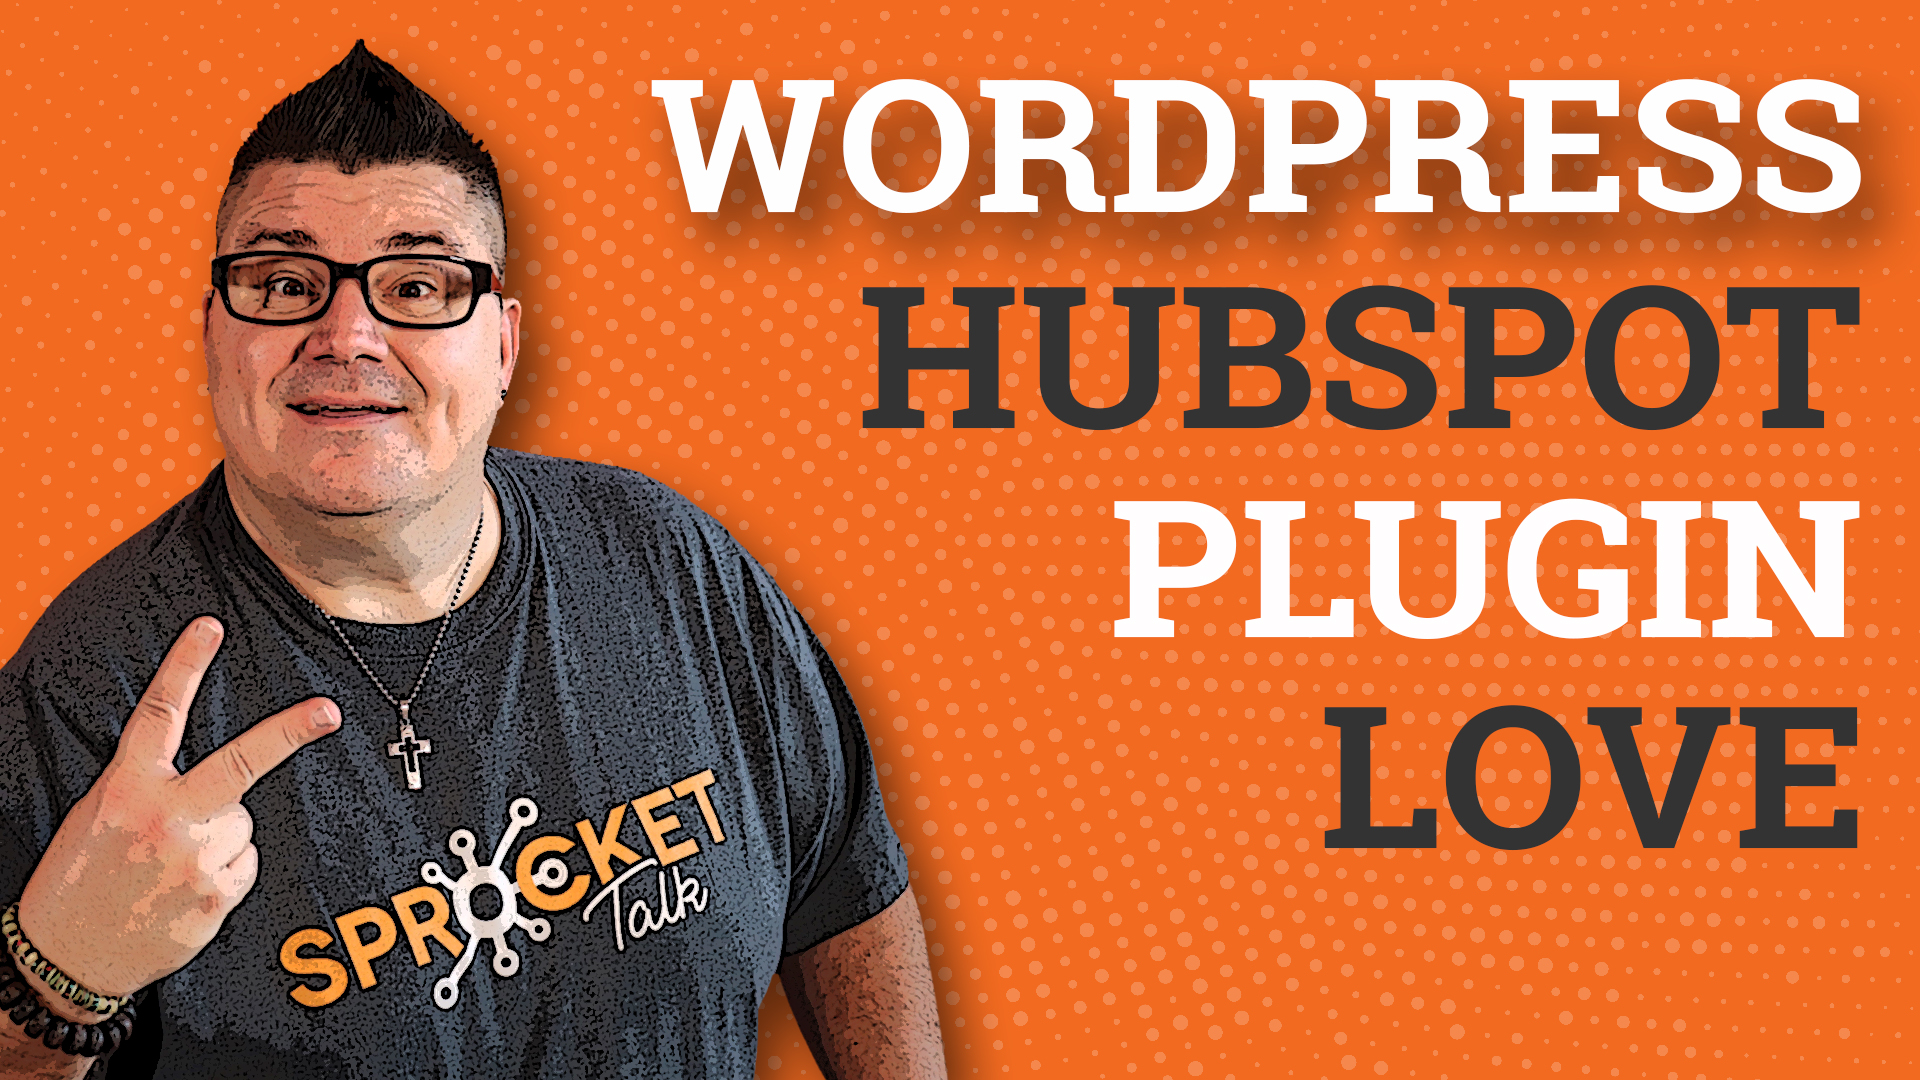 HubSpot WordPress Plugin Contacts, Lists, and Reporting Now Available